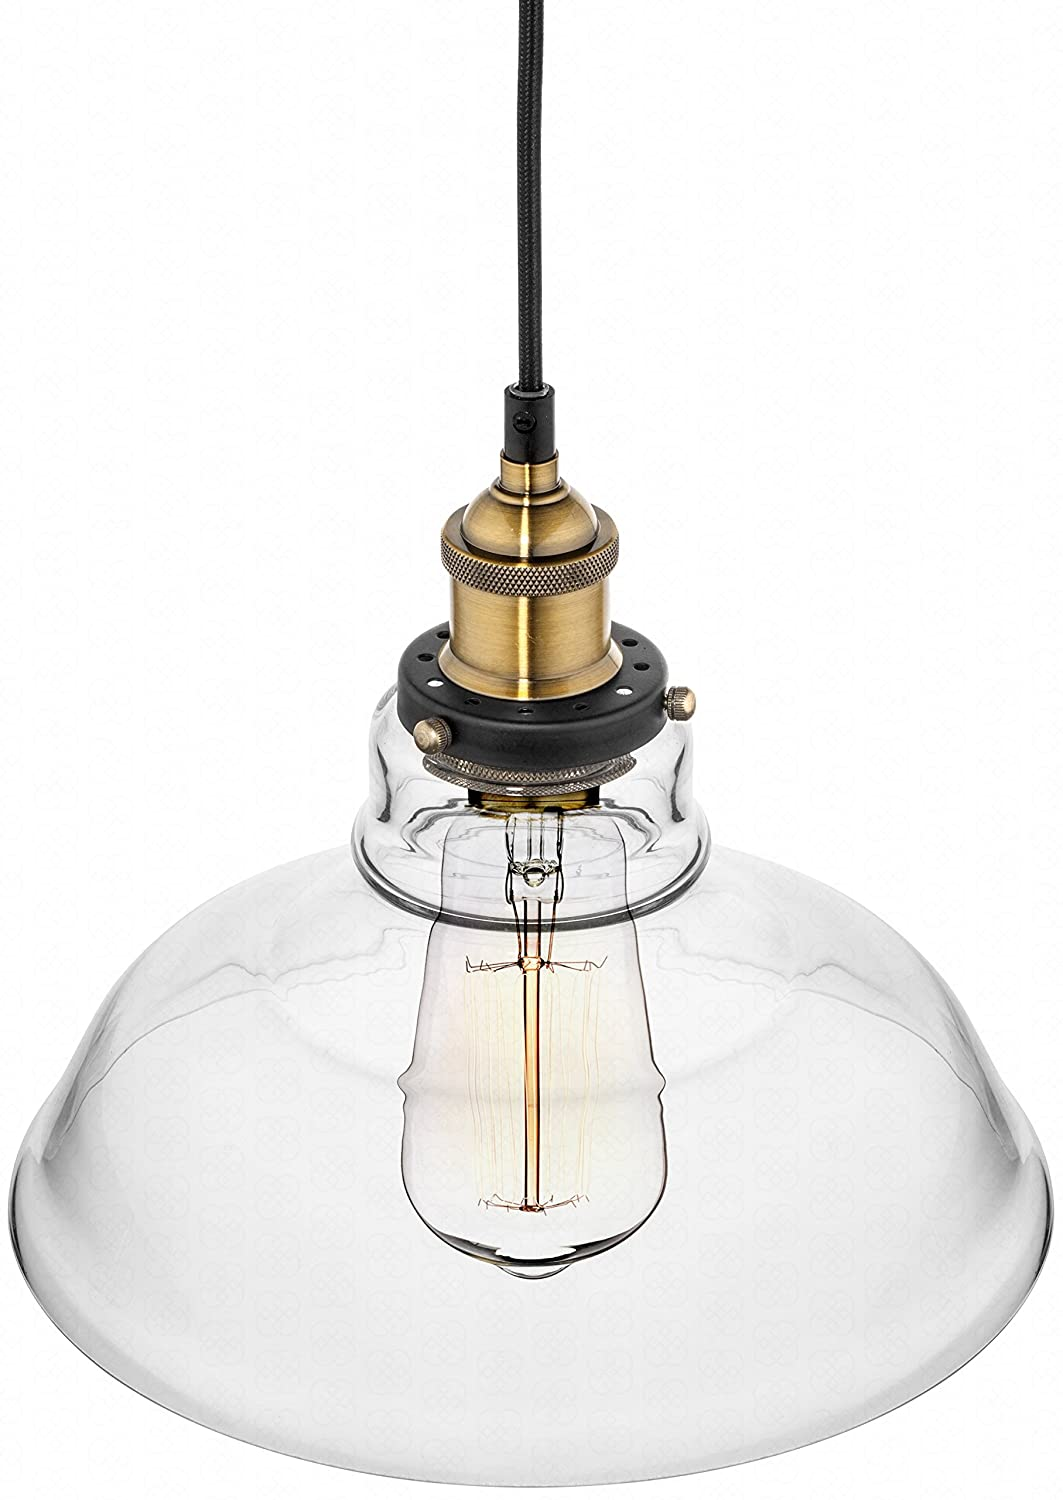 Farmhouse Clear Glass Shade Ceiling Pendant Lighting, Kitchen Chandelier  Style With Brass Fixture By Deneve     Amazon.com